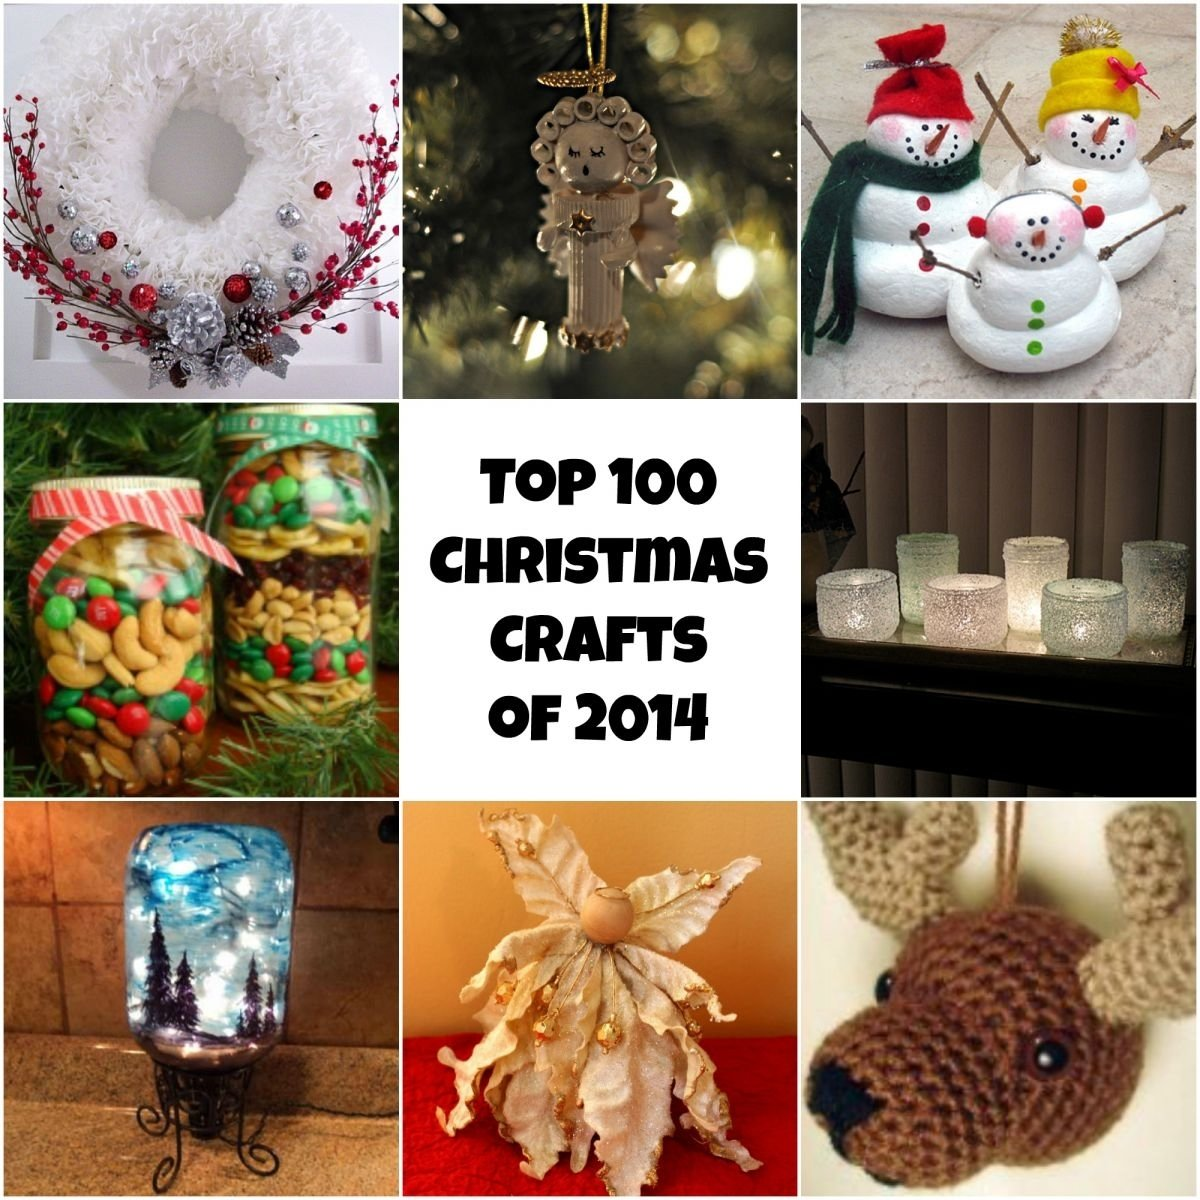 10 Spectacular Top Christmas Gift Ideas 2013 top 100 diy christmas crafts of 2014 homemade christmas ornaments 6 2020